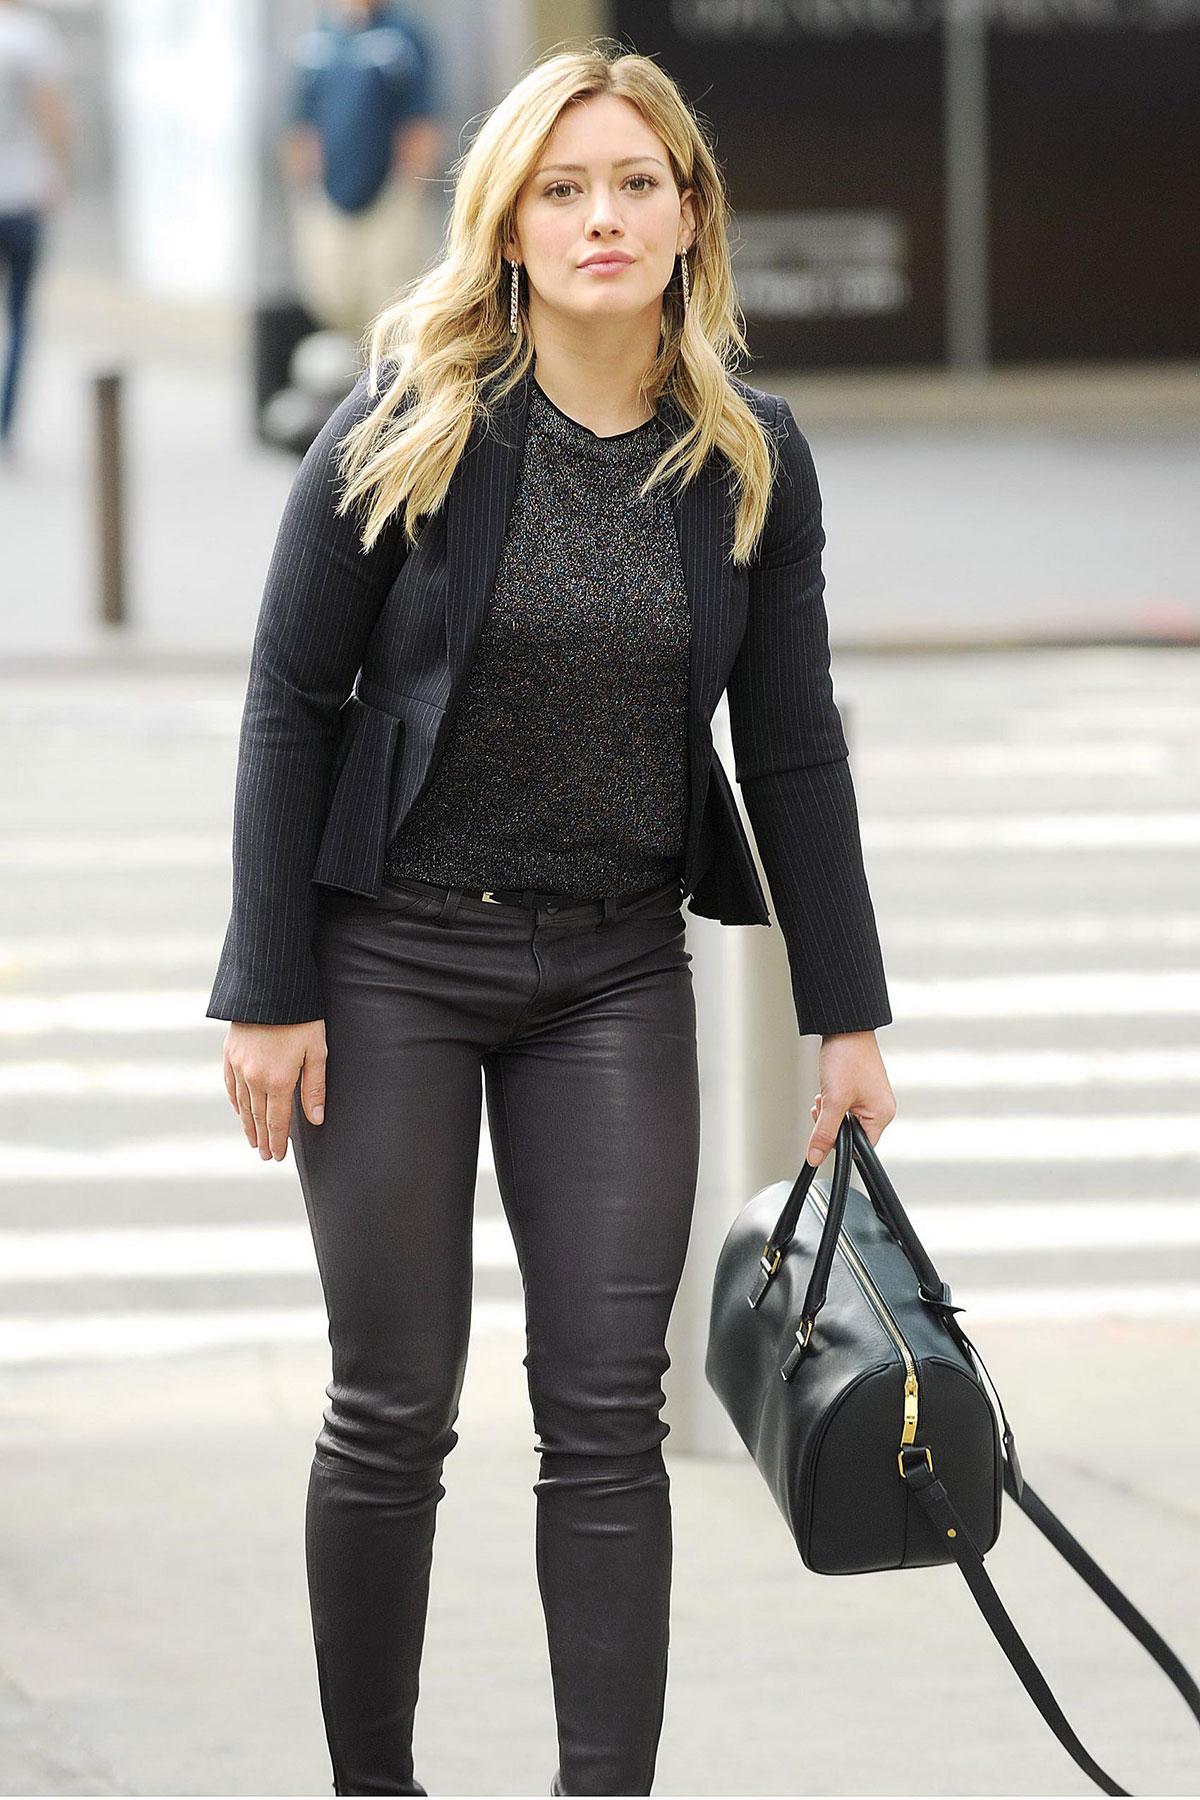 Hilary Duff was spotted on the set of Younger in New York City